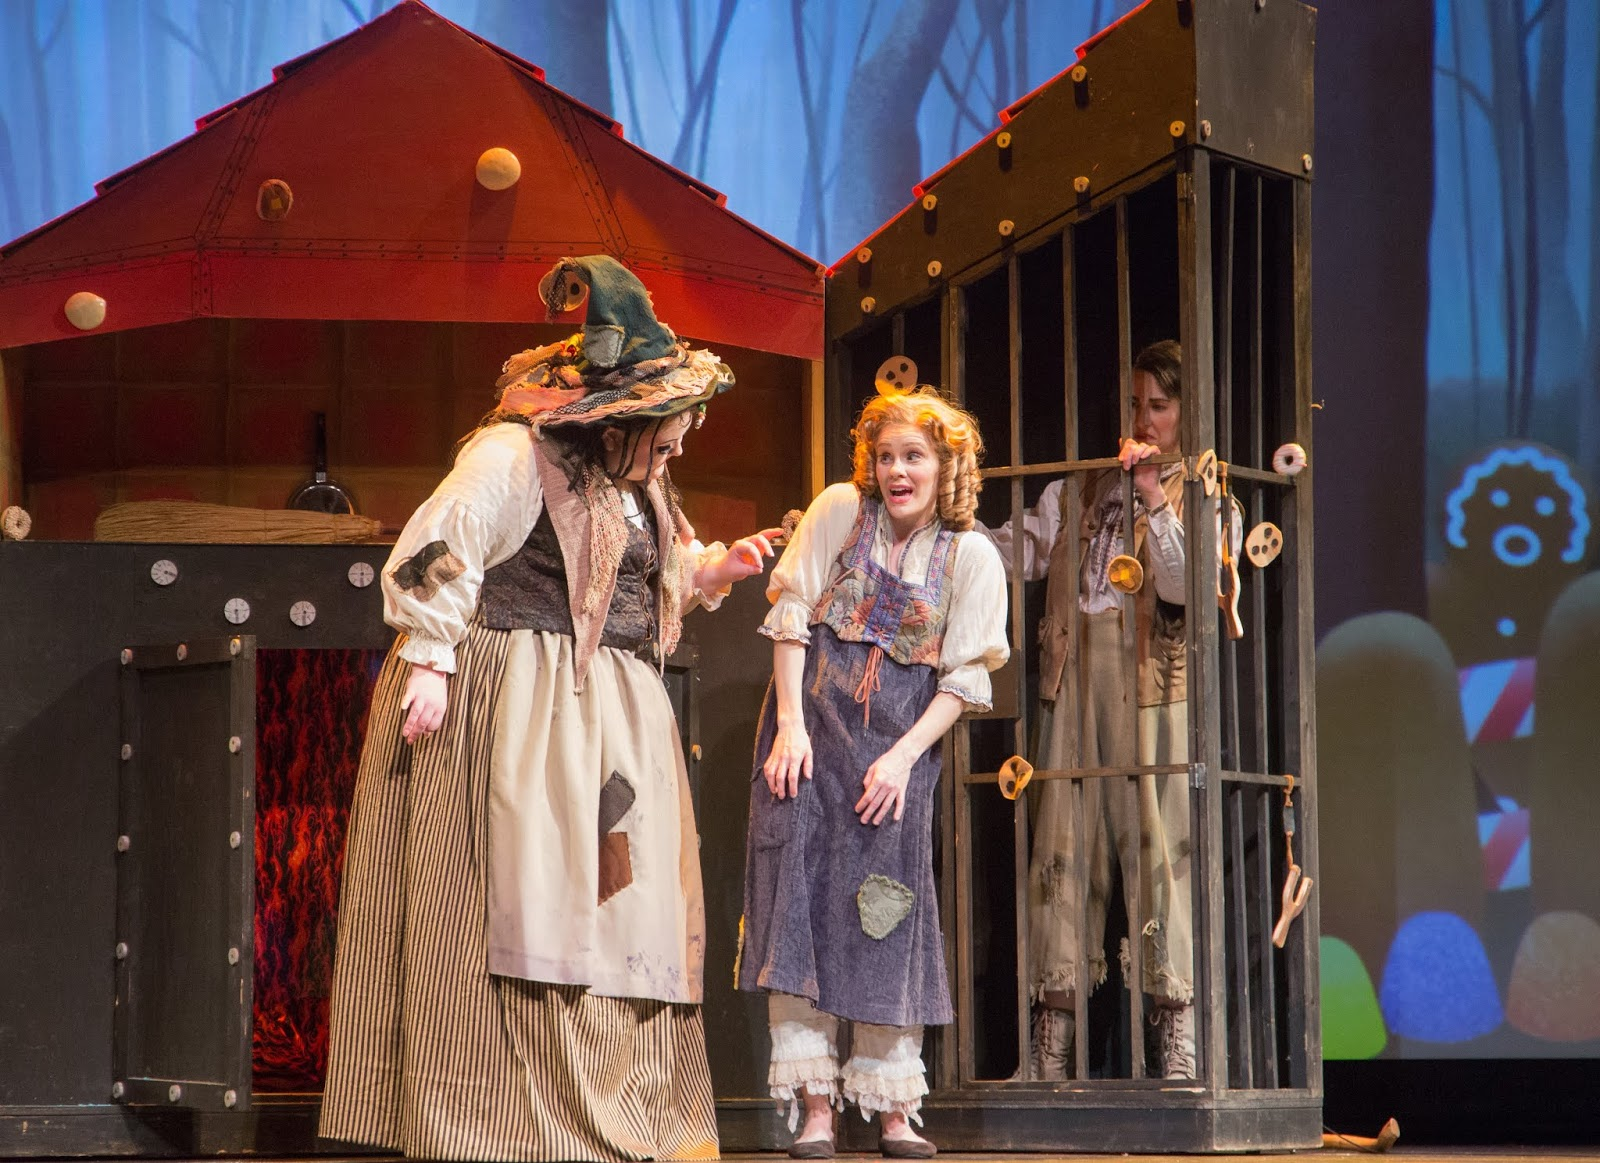 IN PERFORMANCE: (from left to right) mezzo-soprano GRETCHEN KRUPP as Die Knusperhexe, soprano JOANN MARTINSON DAVIS as Gretel, and mezzo-soprano STEPHANIE FOLEY DAVIS as Hänsel in Greensboro Opera's March 2019 of Engelbert Humperdinck's HÄNSEL UND GRETEL [Photograph © by VanderVeen Photographers]